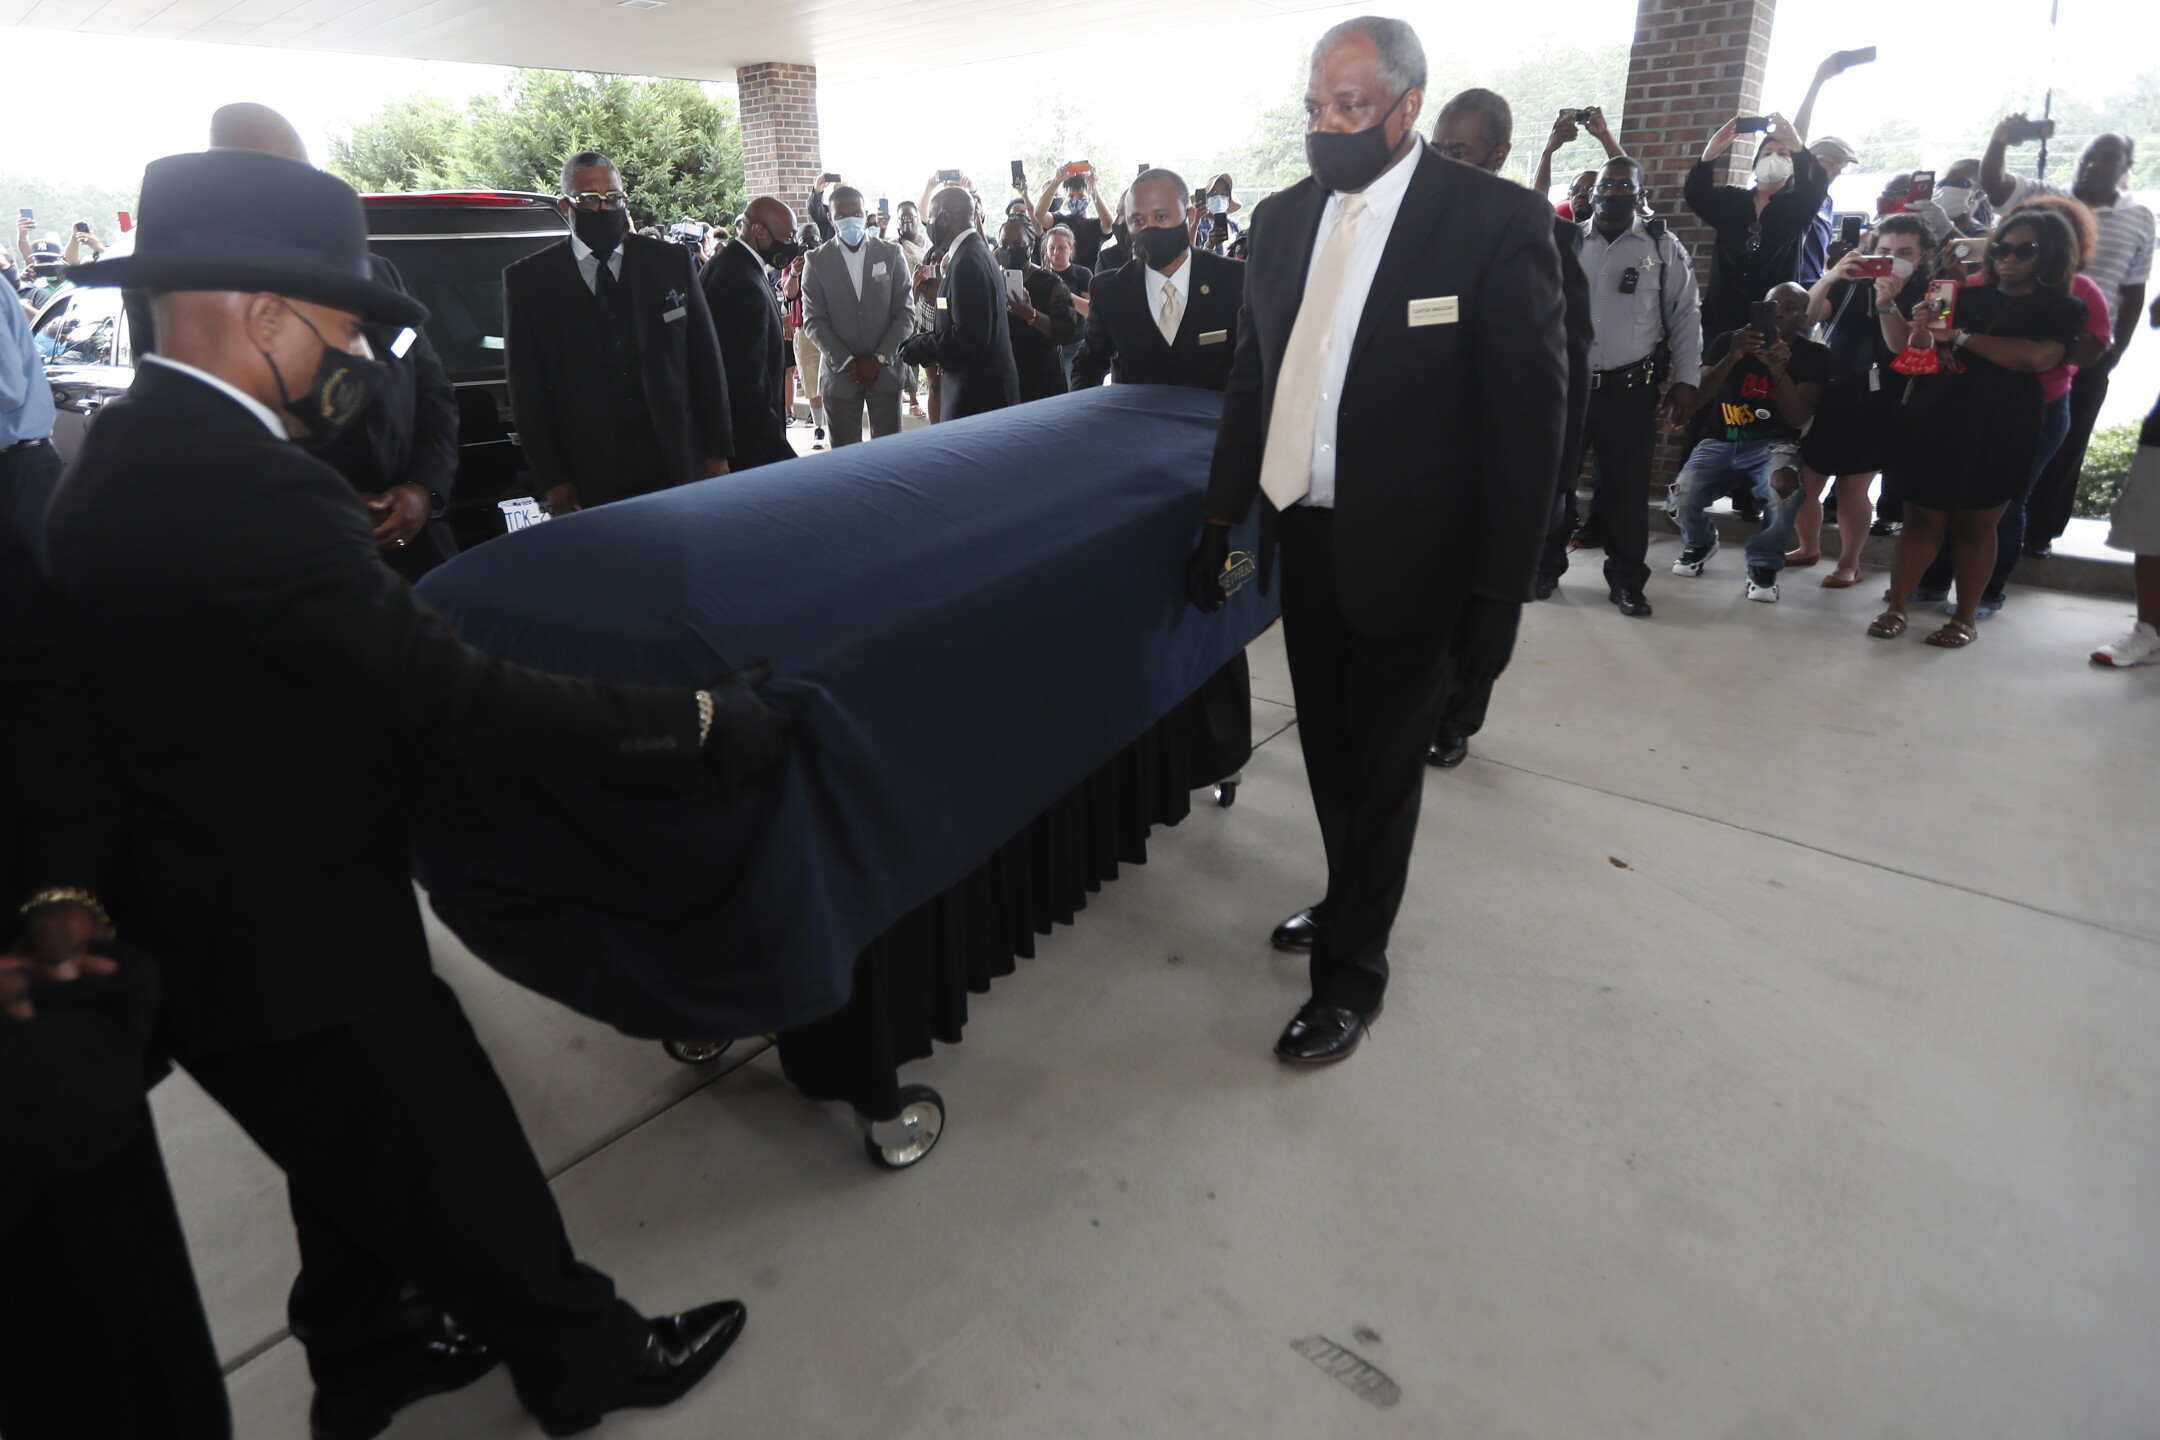 PHOTOS: Mourners pay respects near George Floyd's hometown